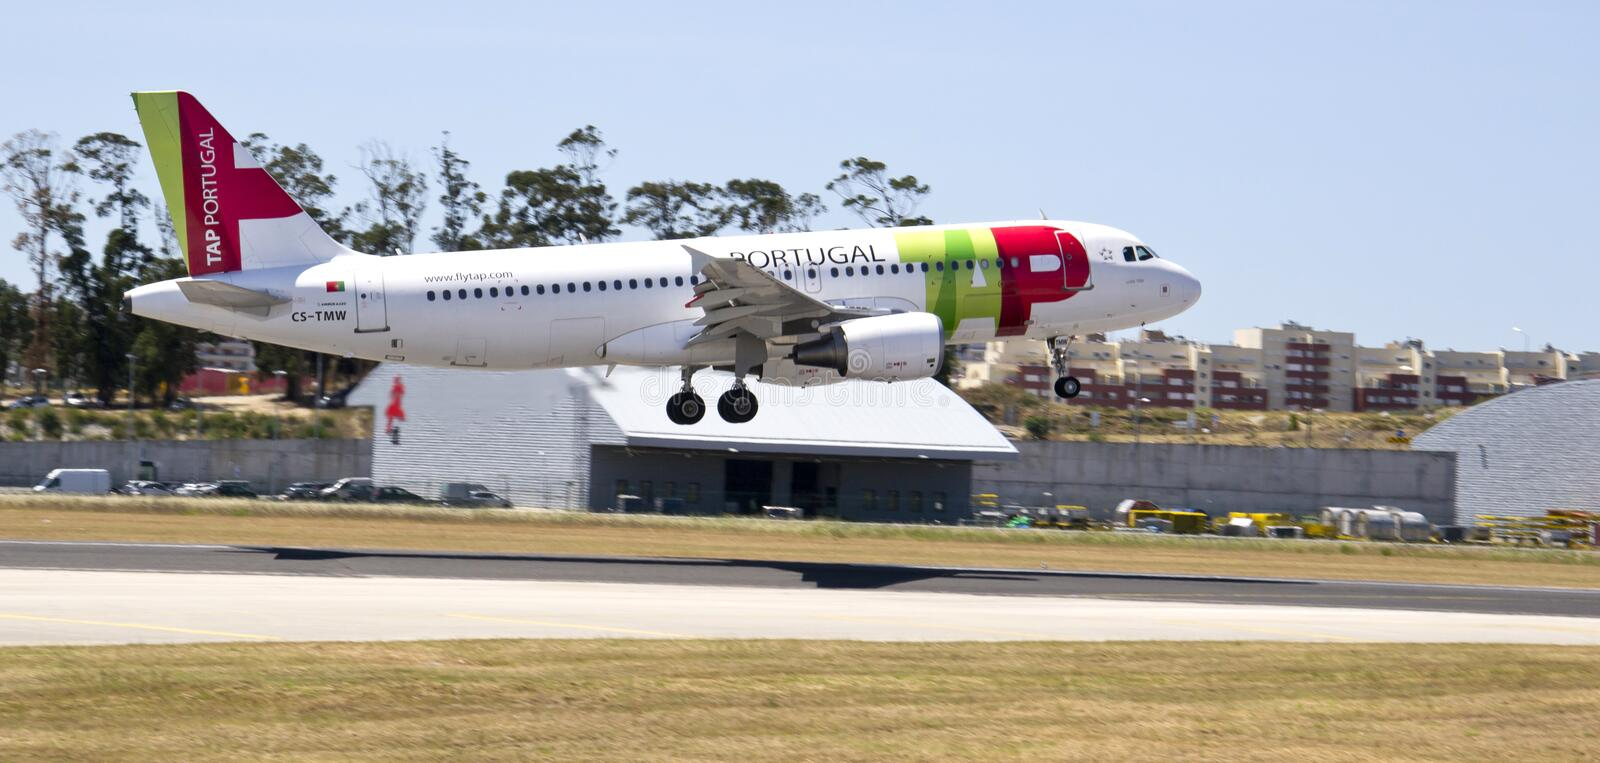 TAP PORTUGAL AIRBUS 320. OPORTO, PORTUGAL - JULY 1: Many flights operated by TAP will be affected for the strike from 5th till 8th july. A TAP aircraft landing stock photos